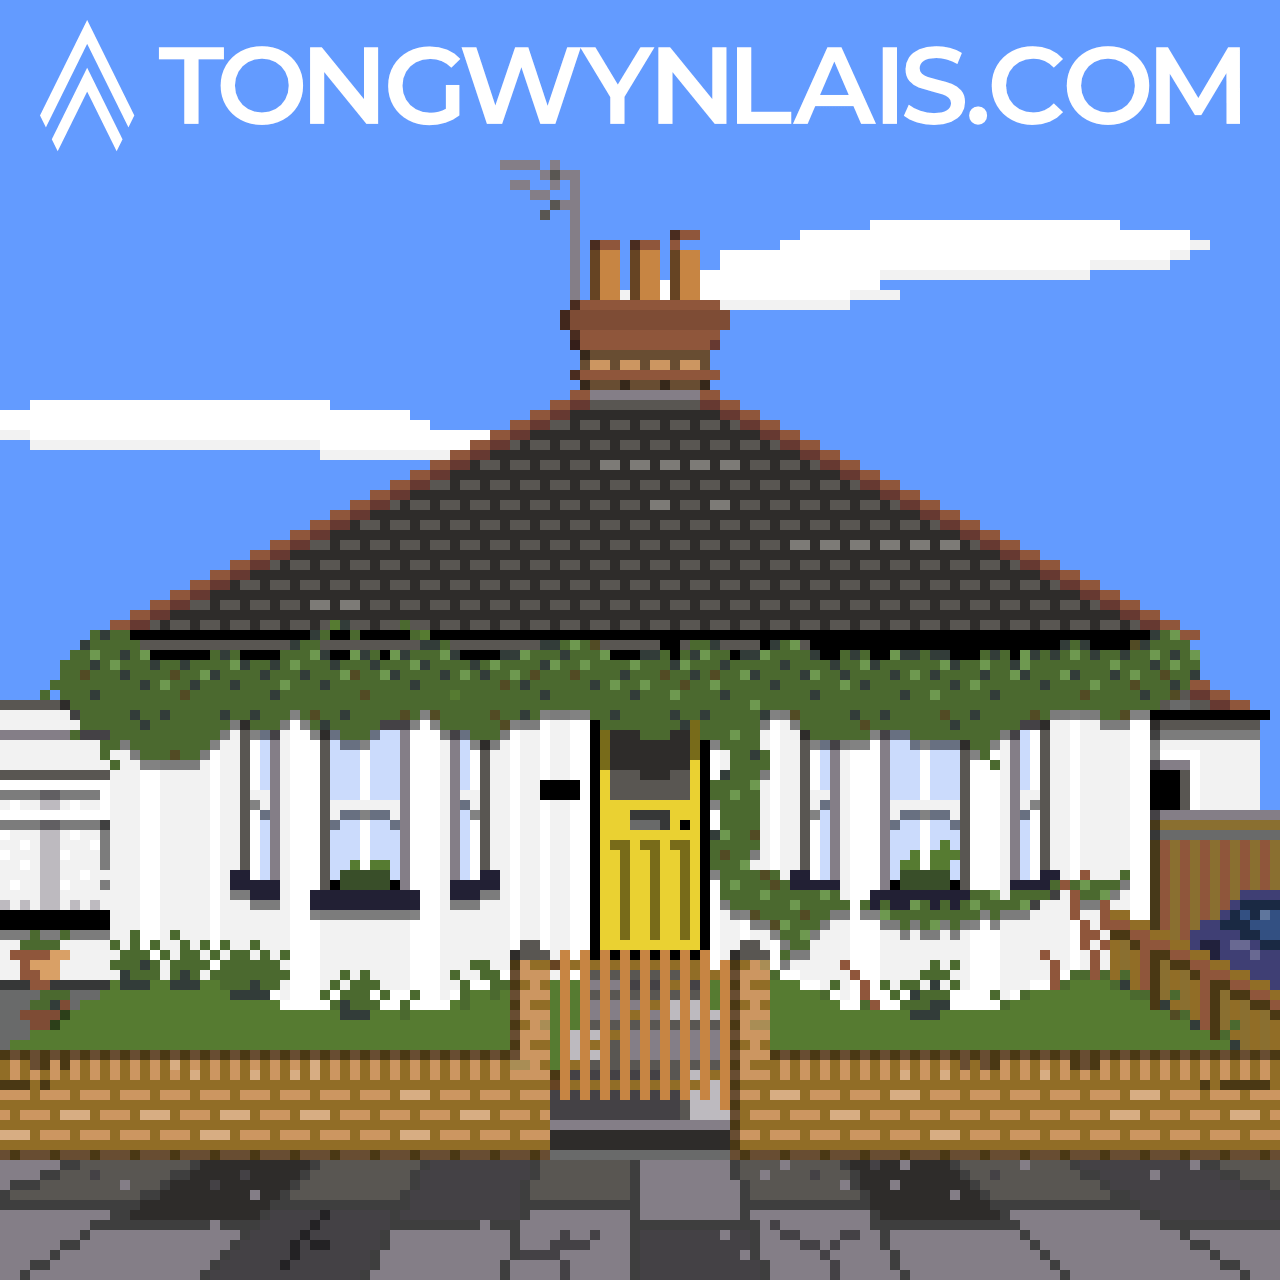 Pixel art illustration of a bungalow